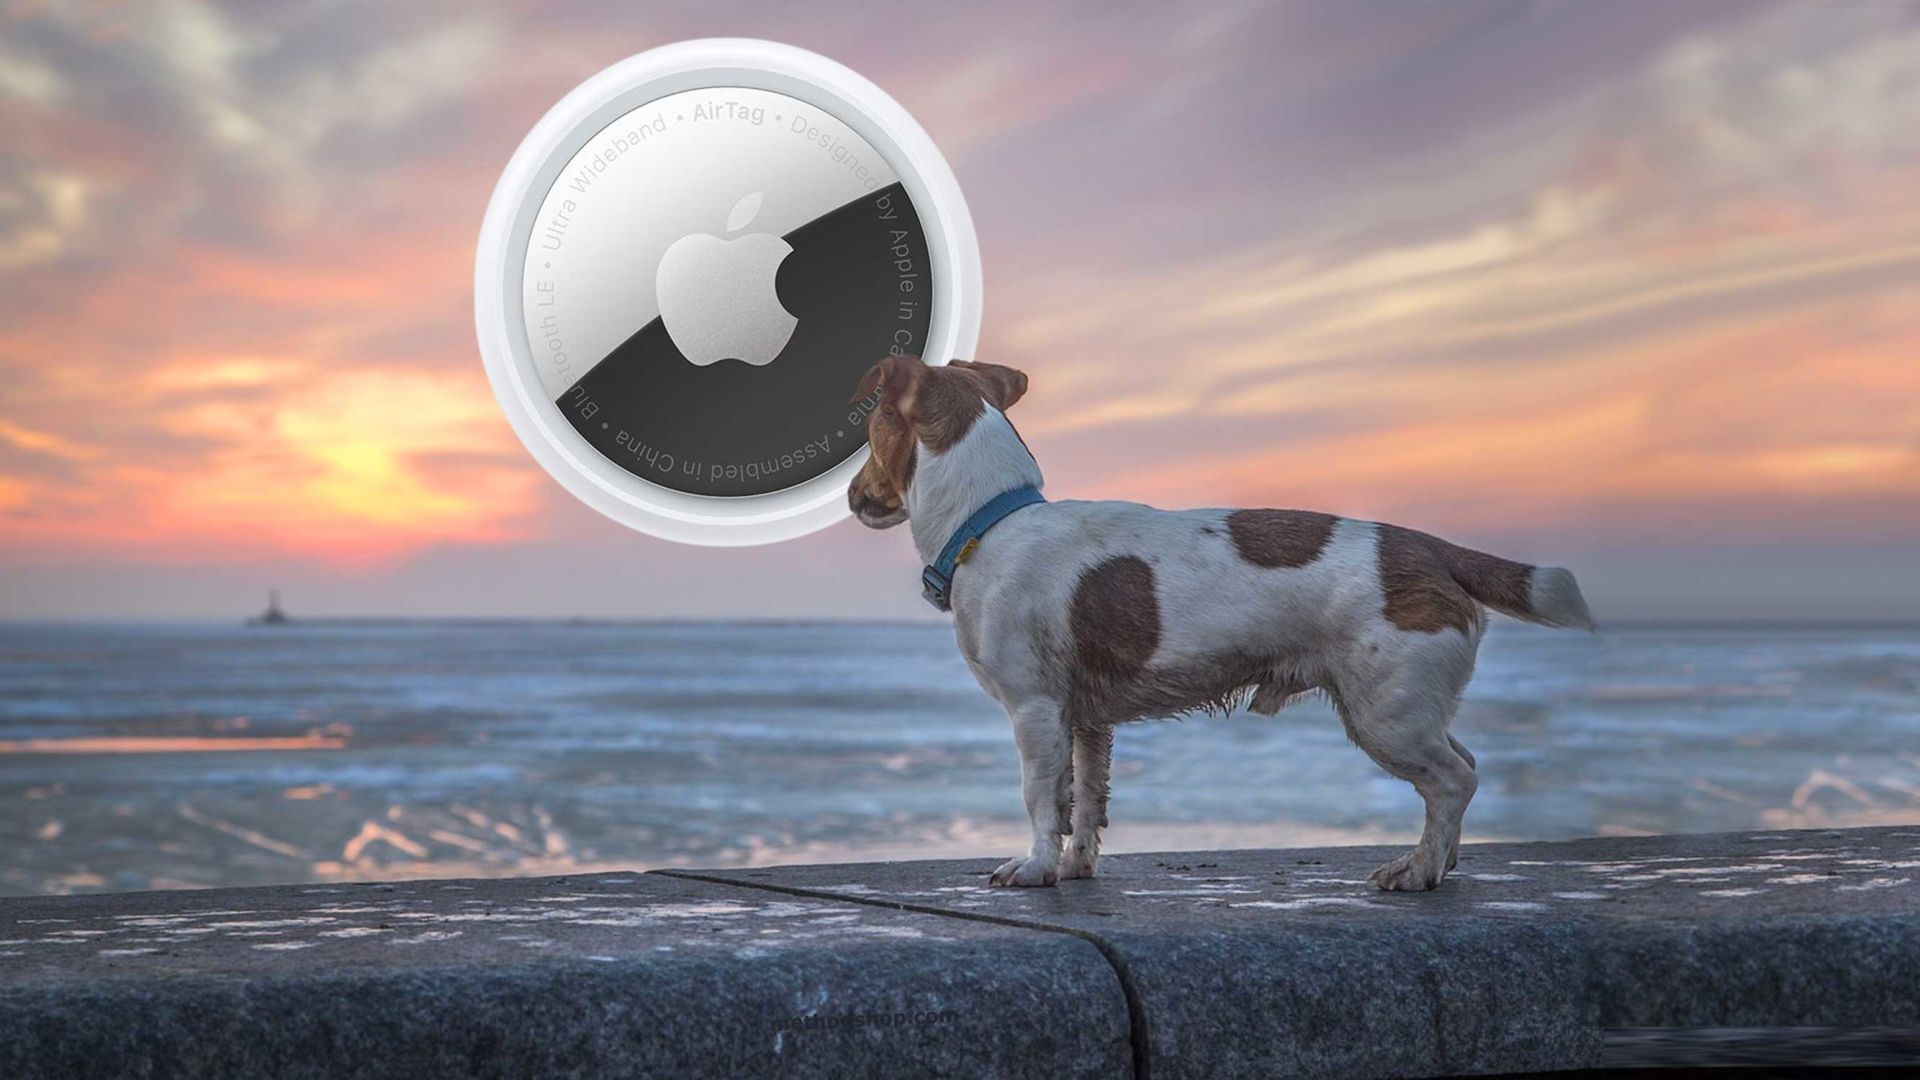 Pet Tracker: Make Recovering Lost Pets Easier With An Airtag